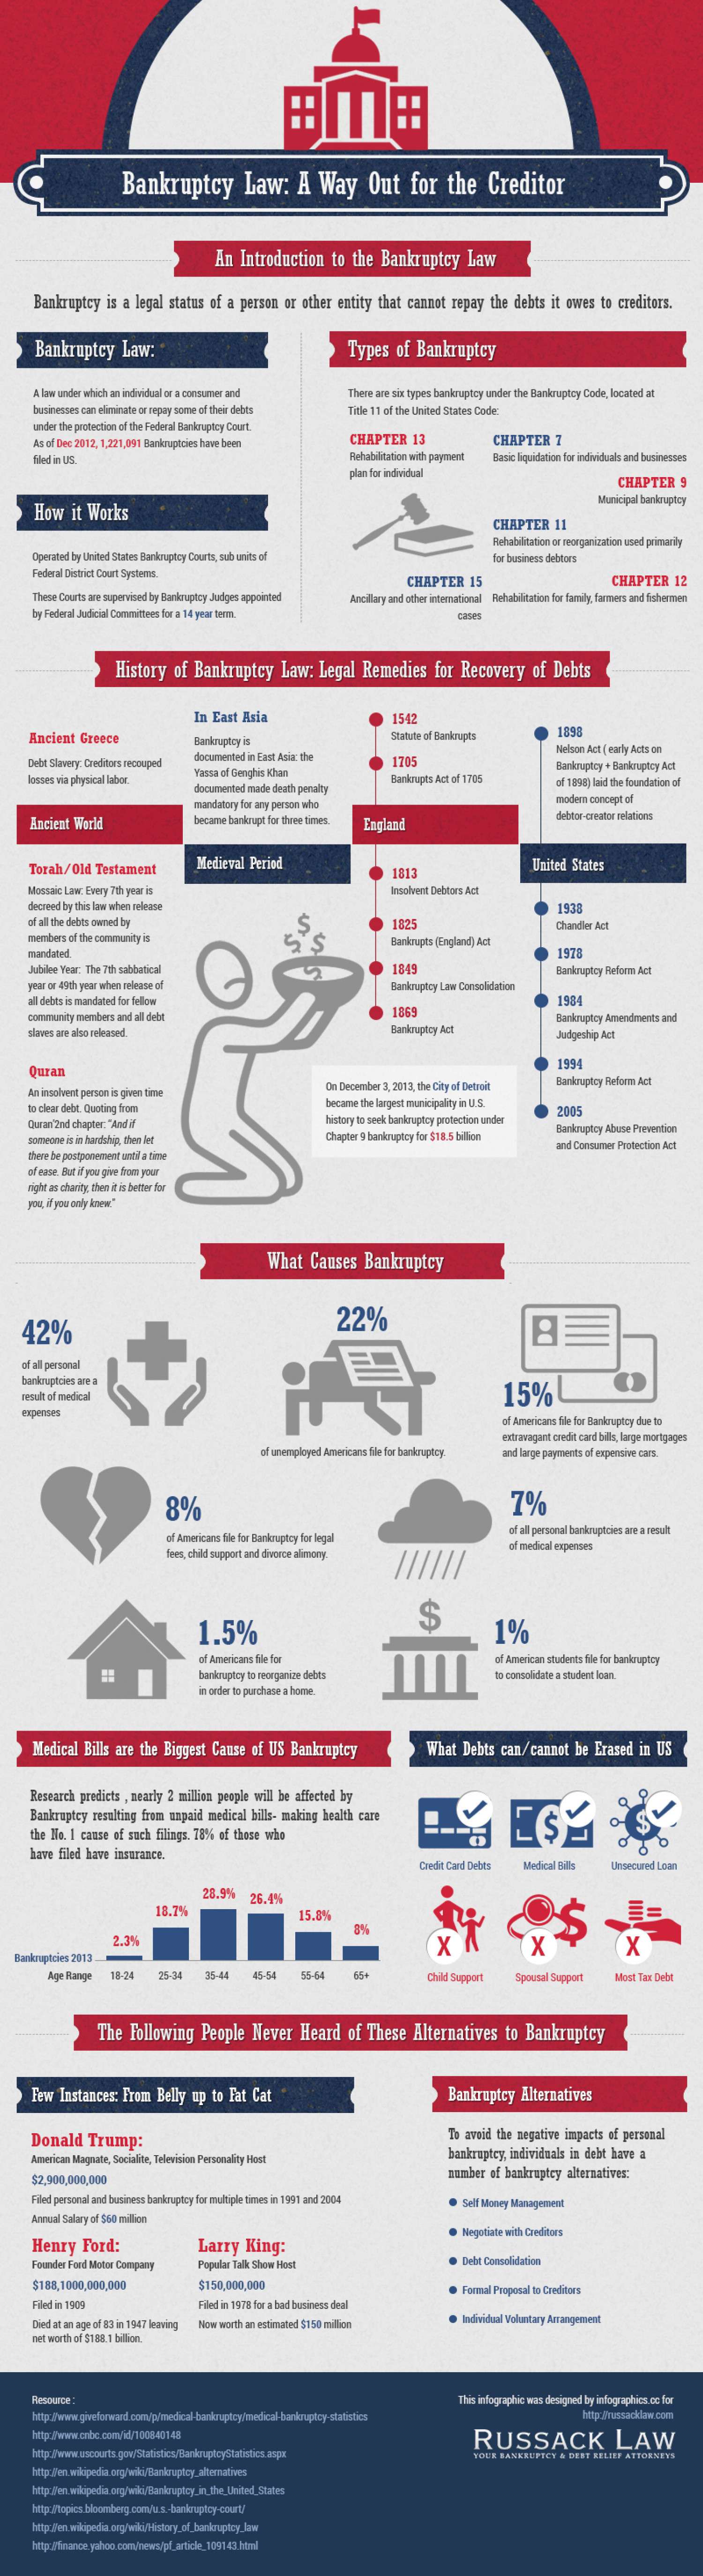 Bankruptcy Law: A Way Out for the Creditor Infographic